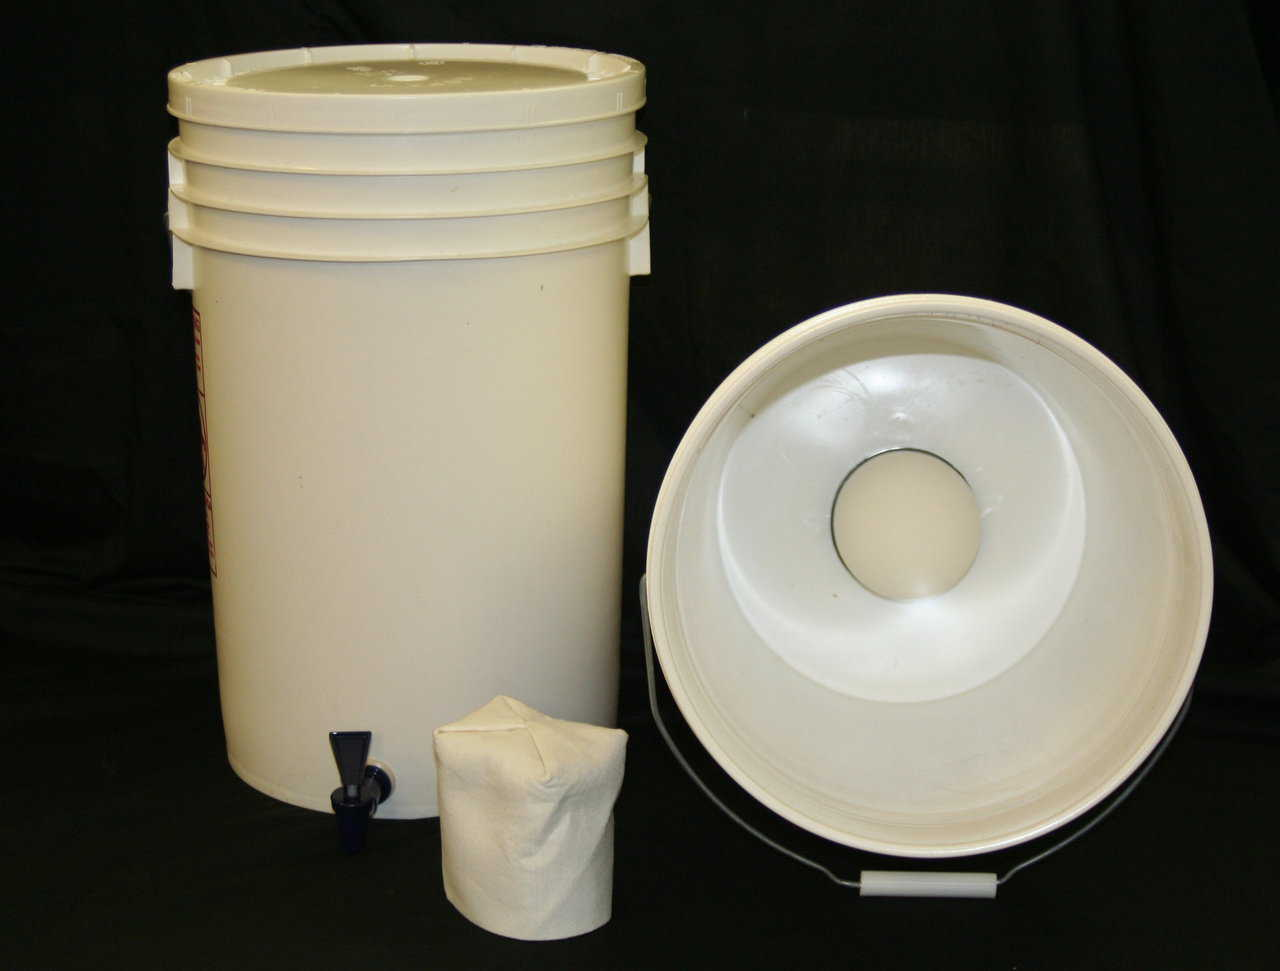 A Practical Life Sustaining Water Filter Monolithic